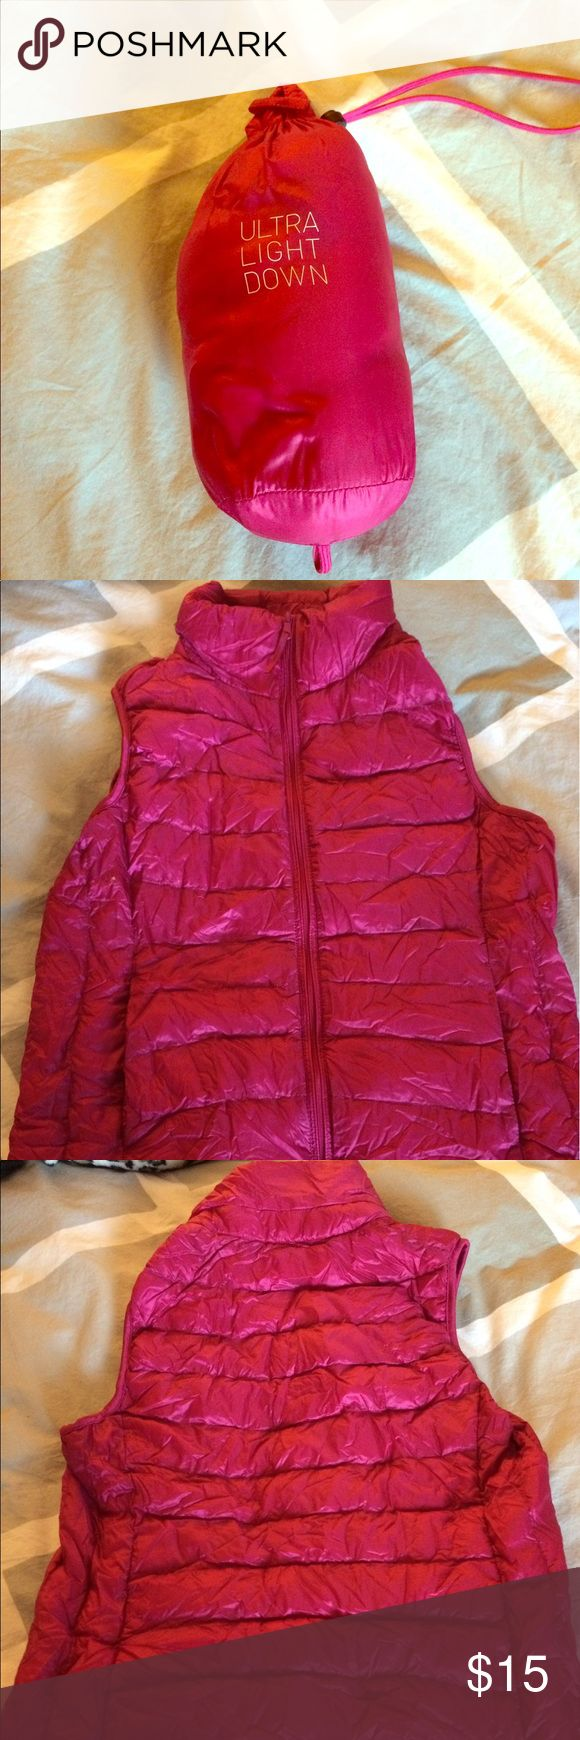 Uniqlo Ulta Light Down Vest Down vest. Throw it in your bag for a warm layer if temp changes. Great for hiking or travel. Weighs almost nothing & packs down into its small stuff sack. Uniqlo knows what they're doing when it comes to down. I own two of these. Uniqlo Jackets & Coats Vests